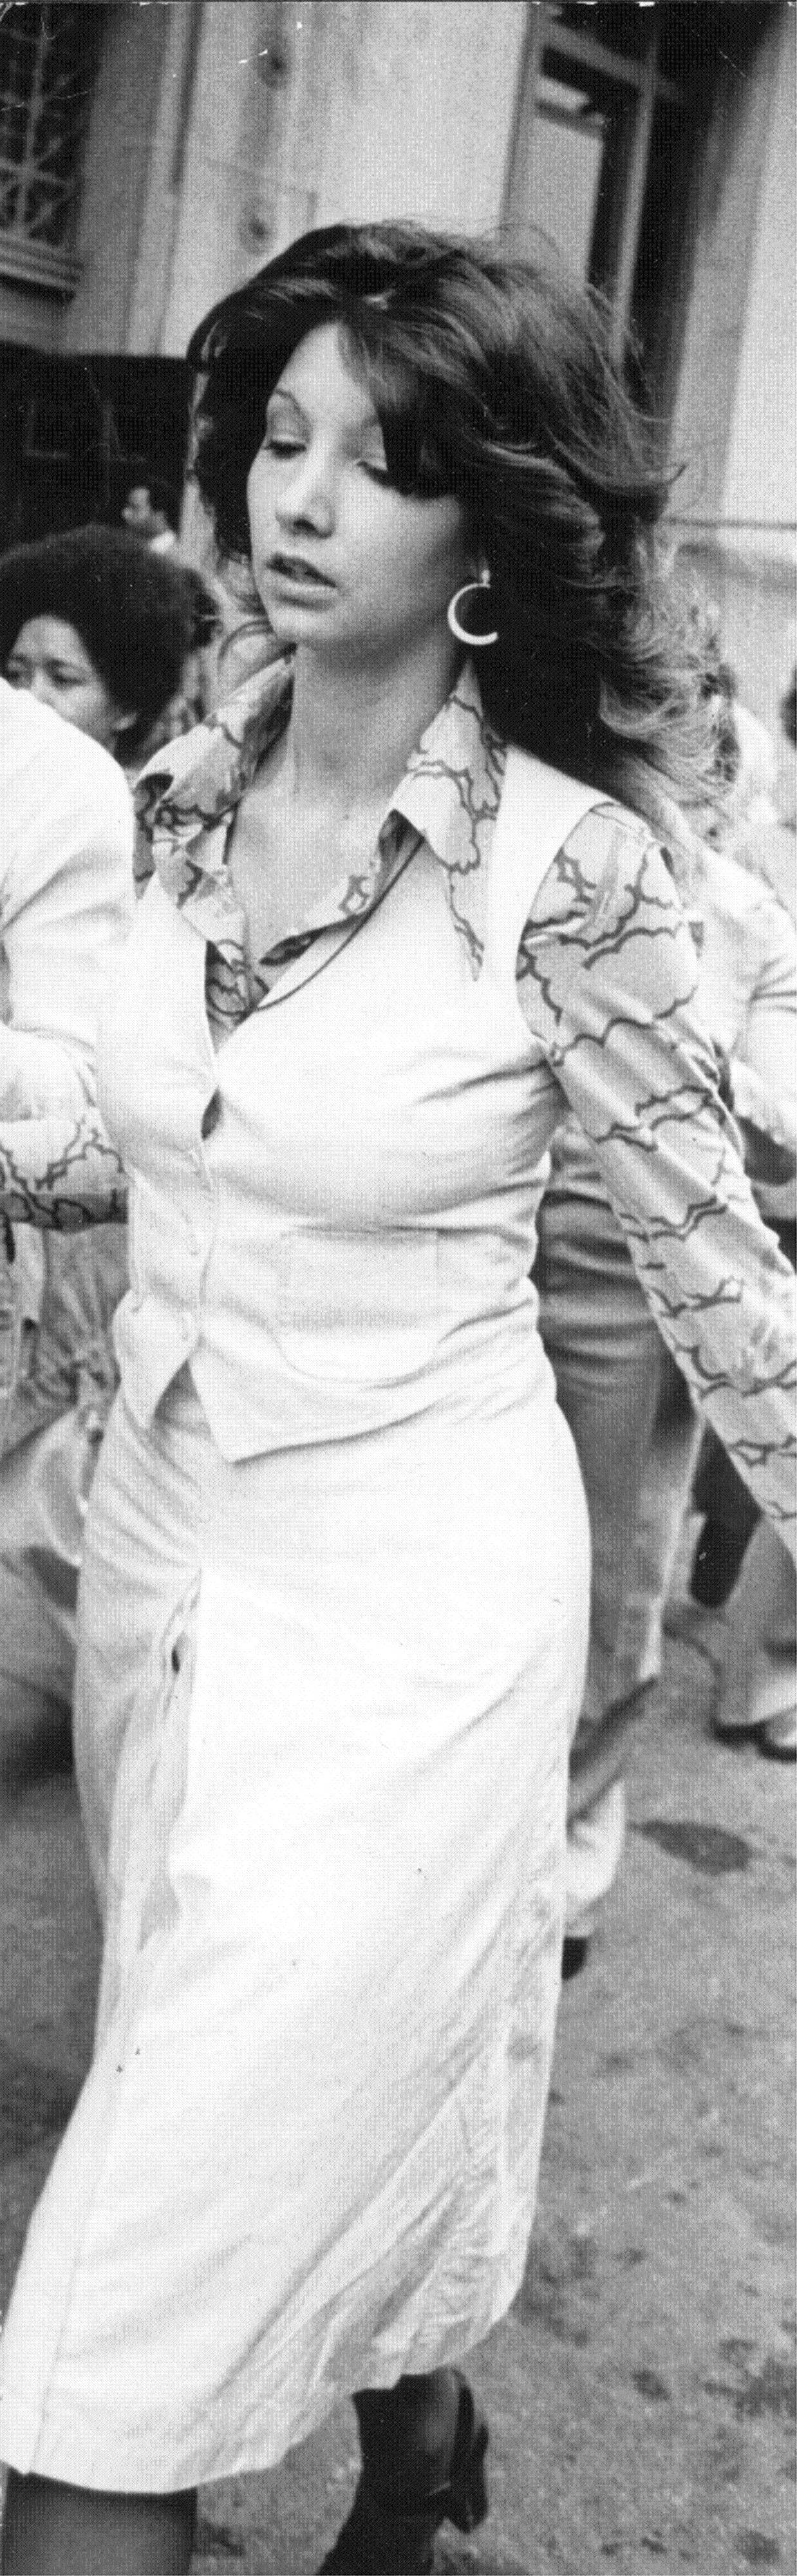 Patricia Columbo leaving the Chicago criminal courts building. Aug 8 1977.